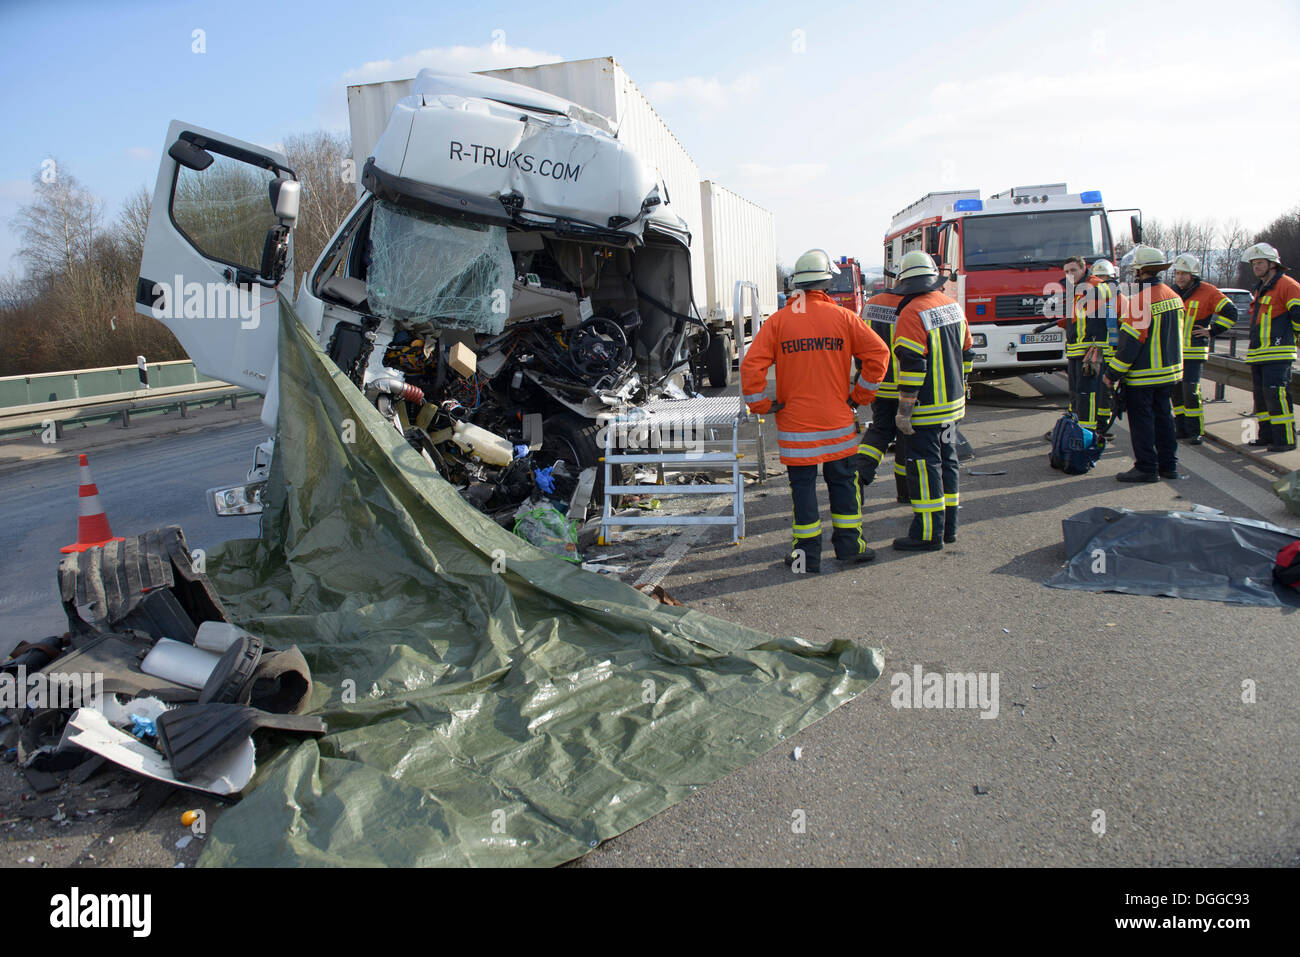 Accident scene, smashed truck cab, fatal truck collision on the A81 ...